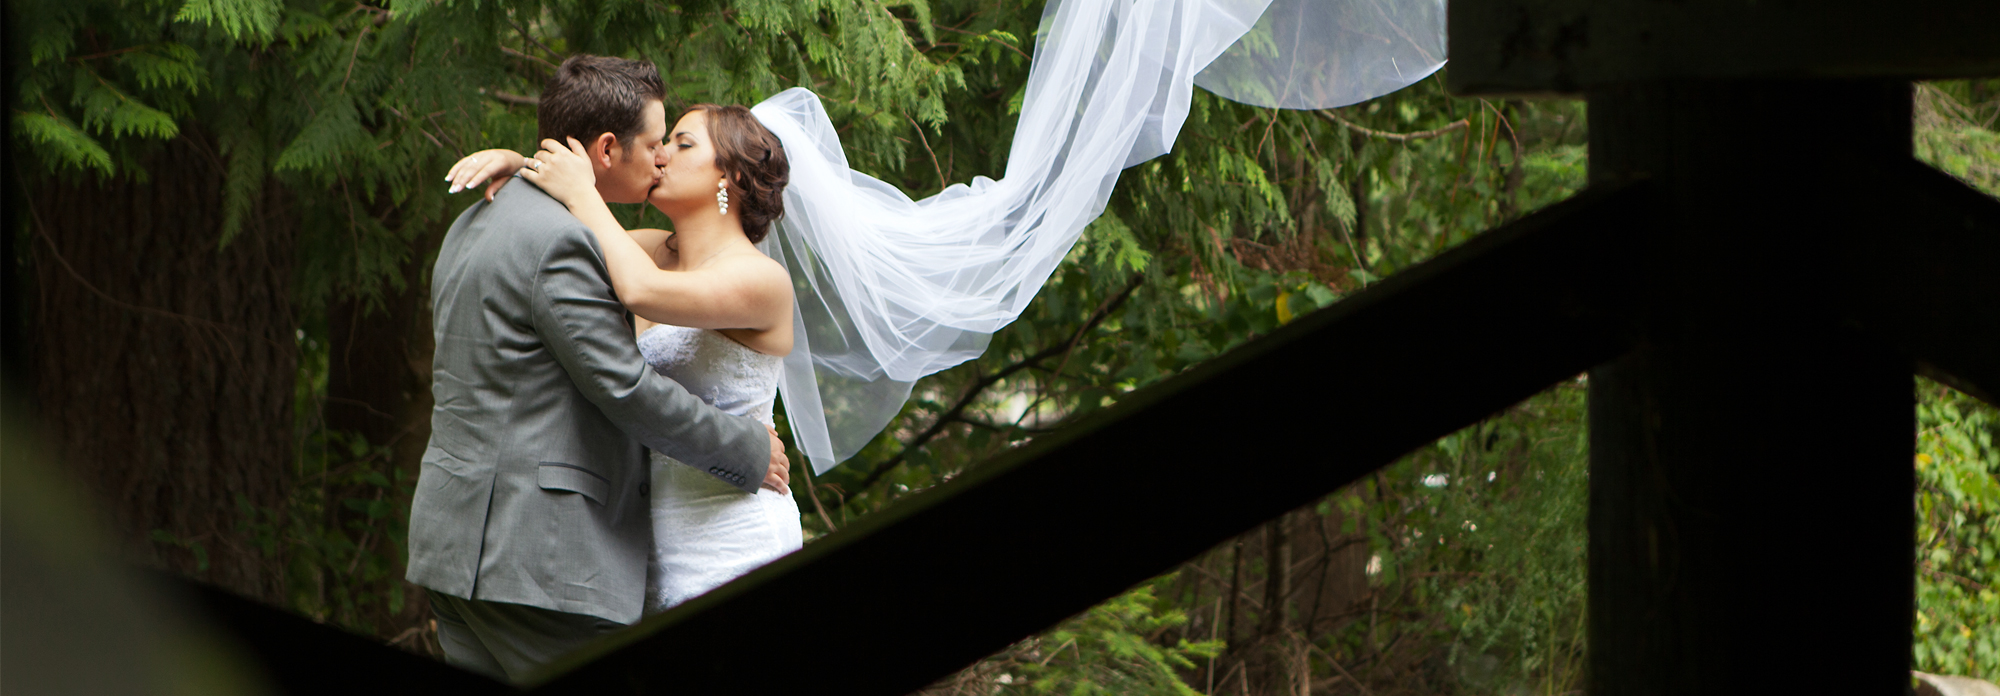 Wedding Photography - Romantic shot of couple kissing